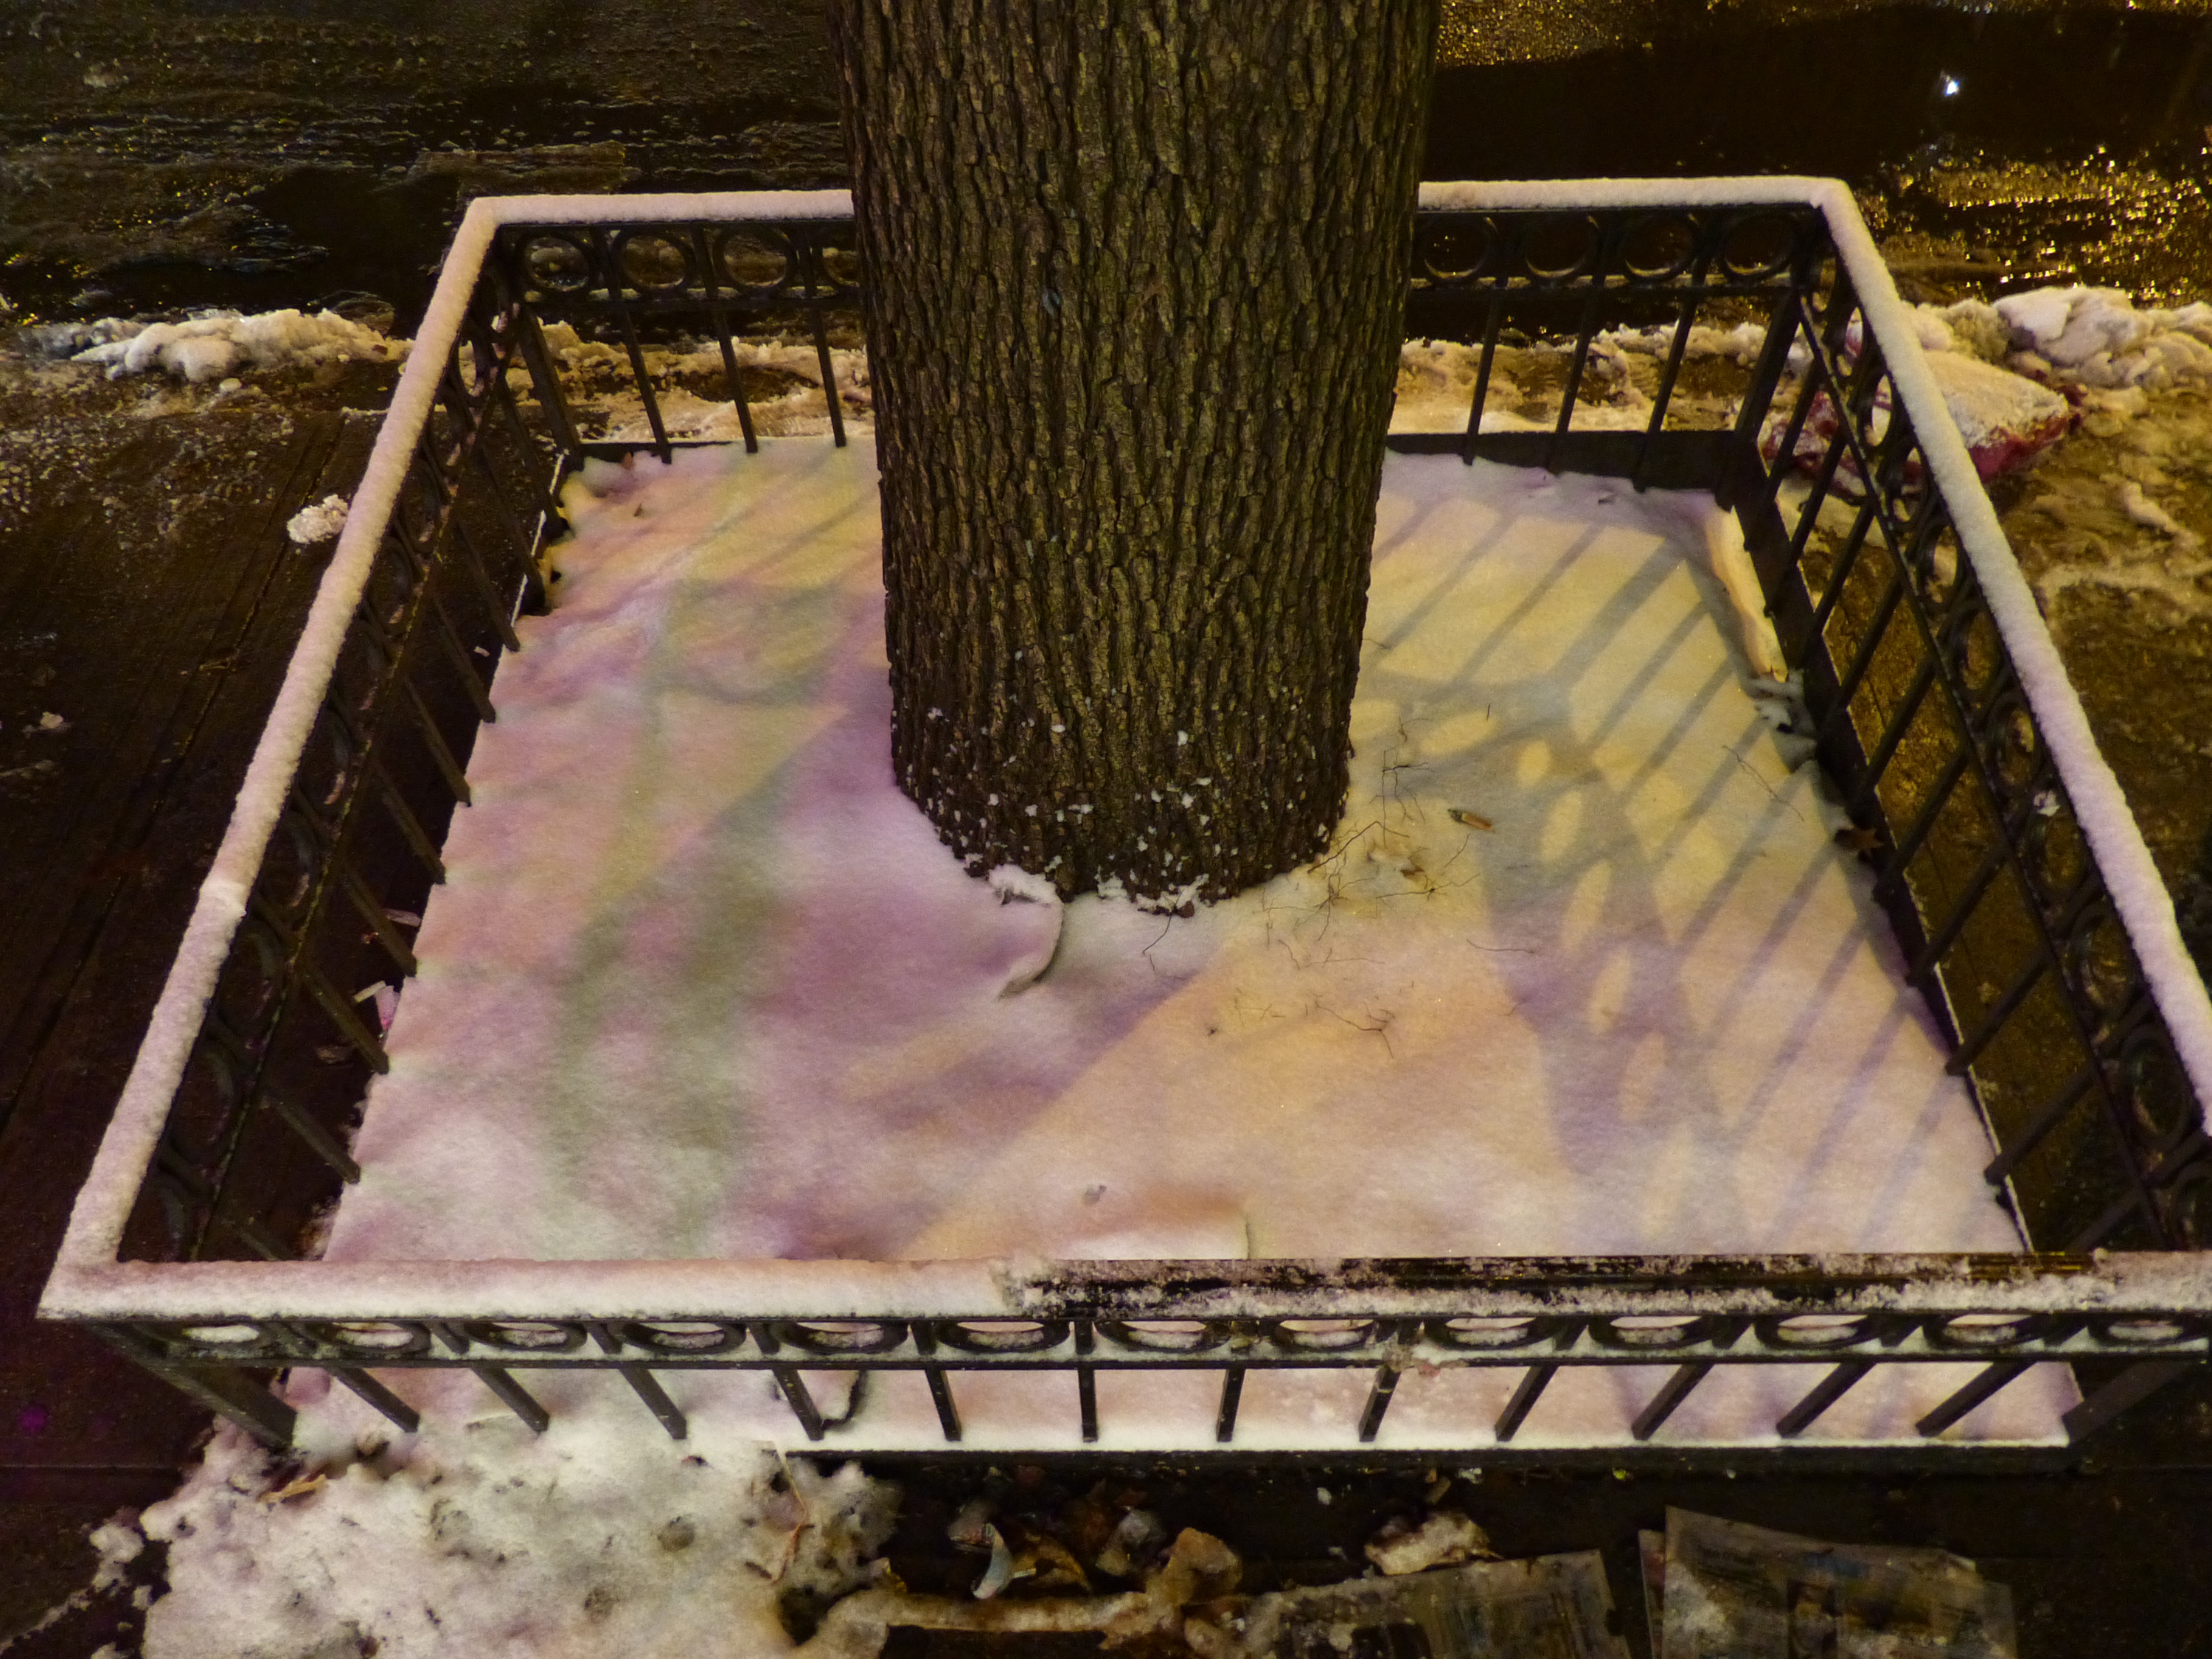 The Callery Pear tree in Manhattan, recorded by David Haskell (Photo via David Haskell)